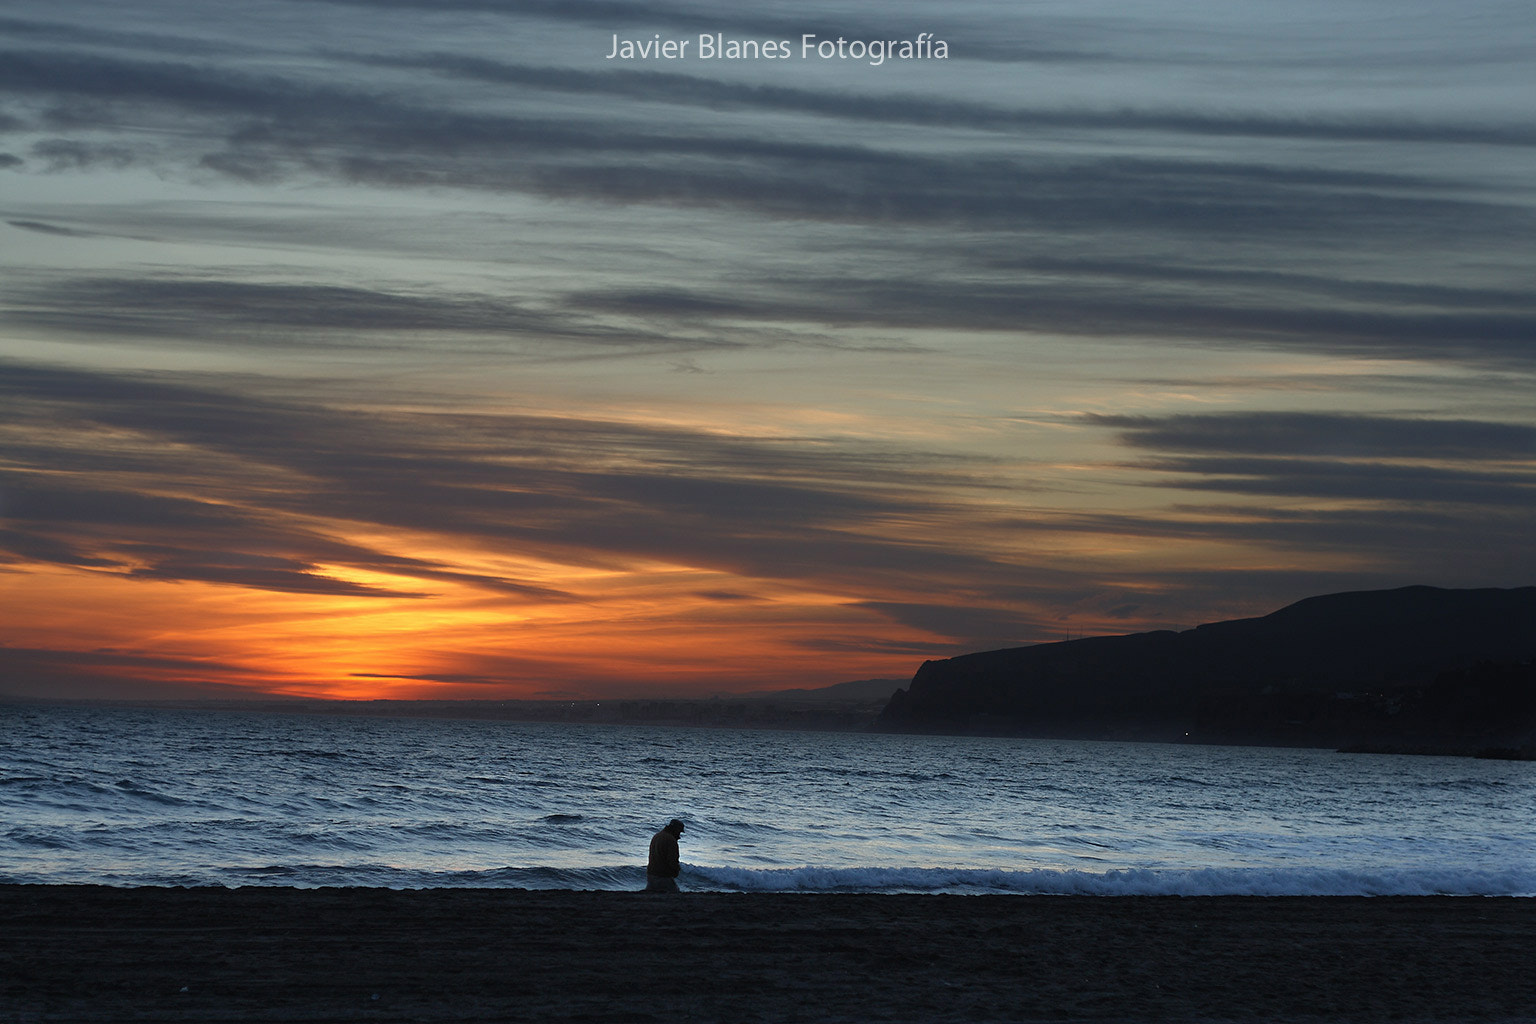 Photograph Alone by Javier Blanes on 500px